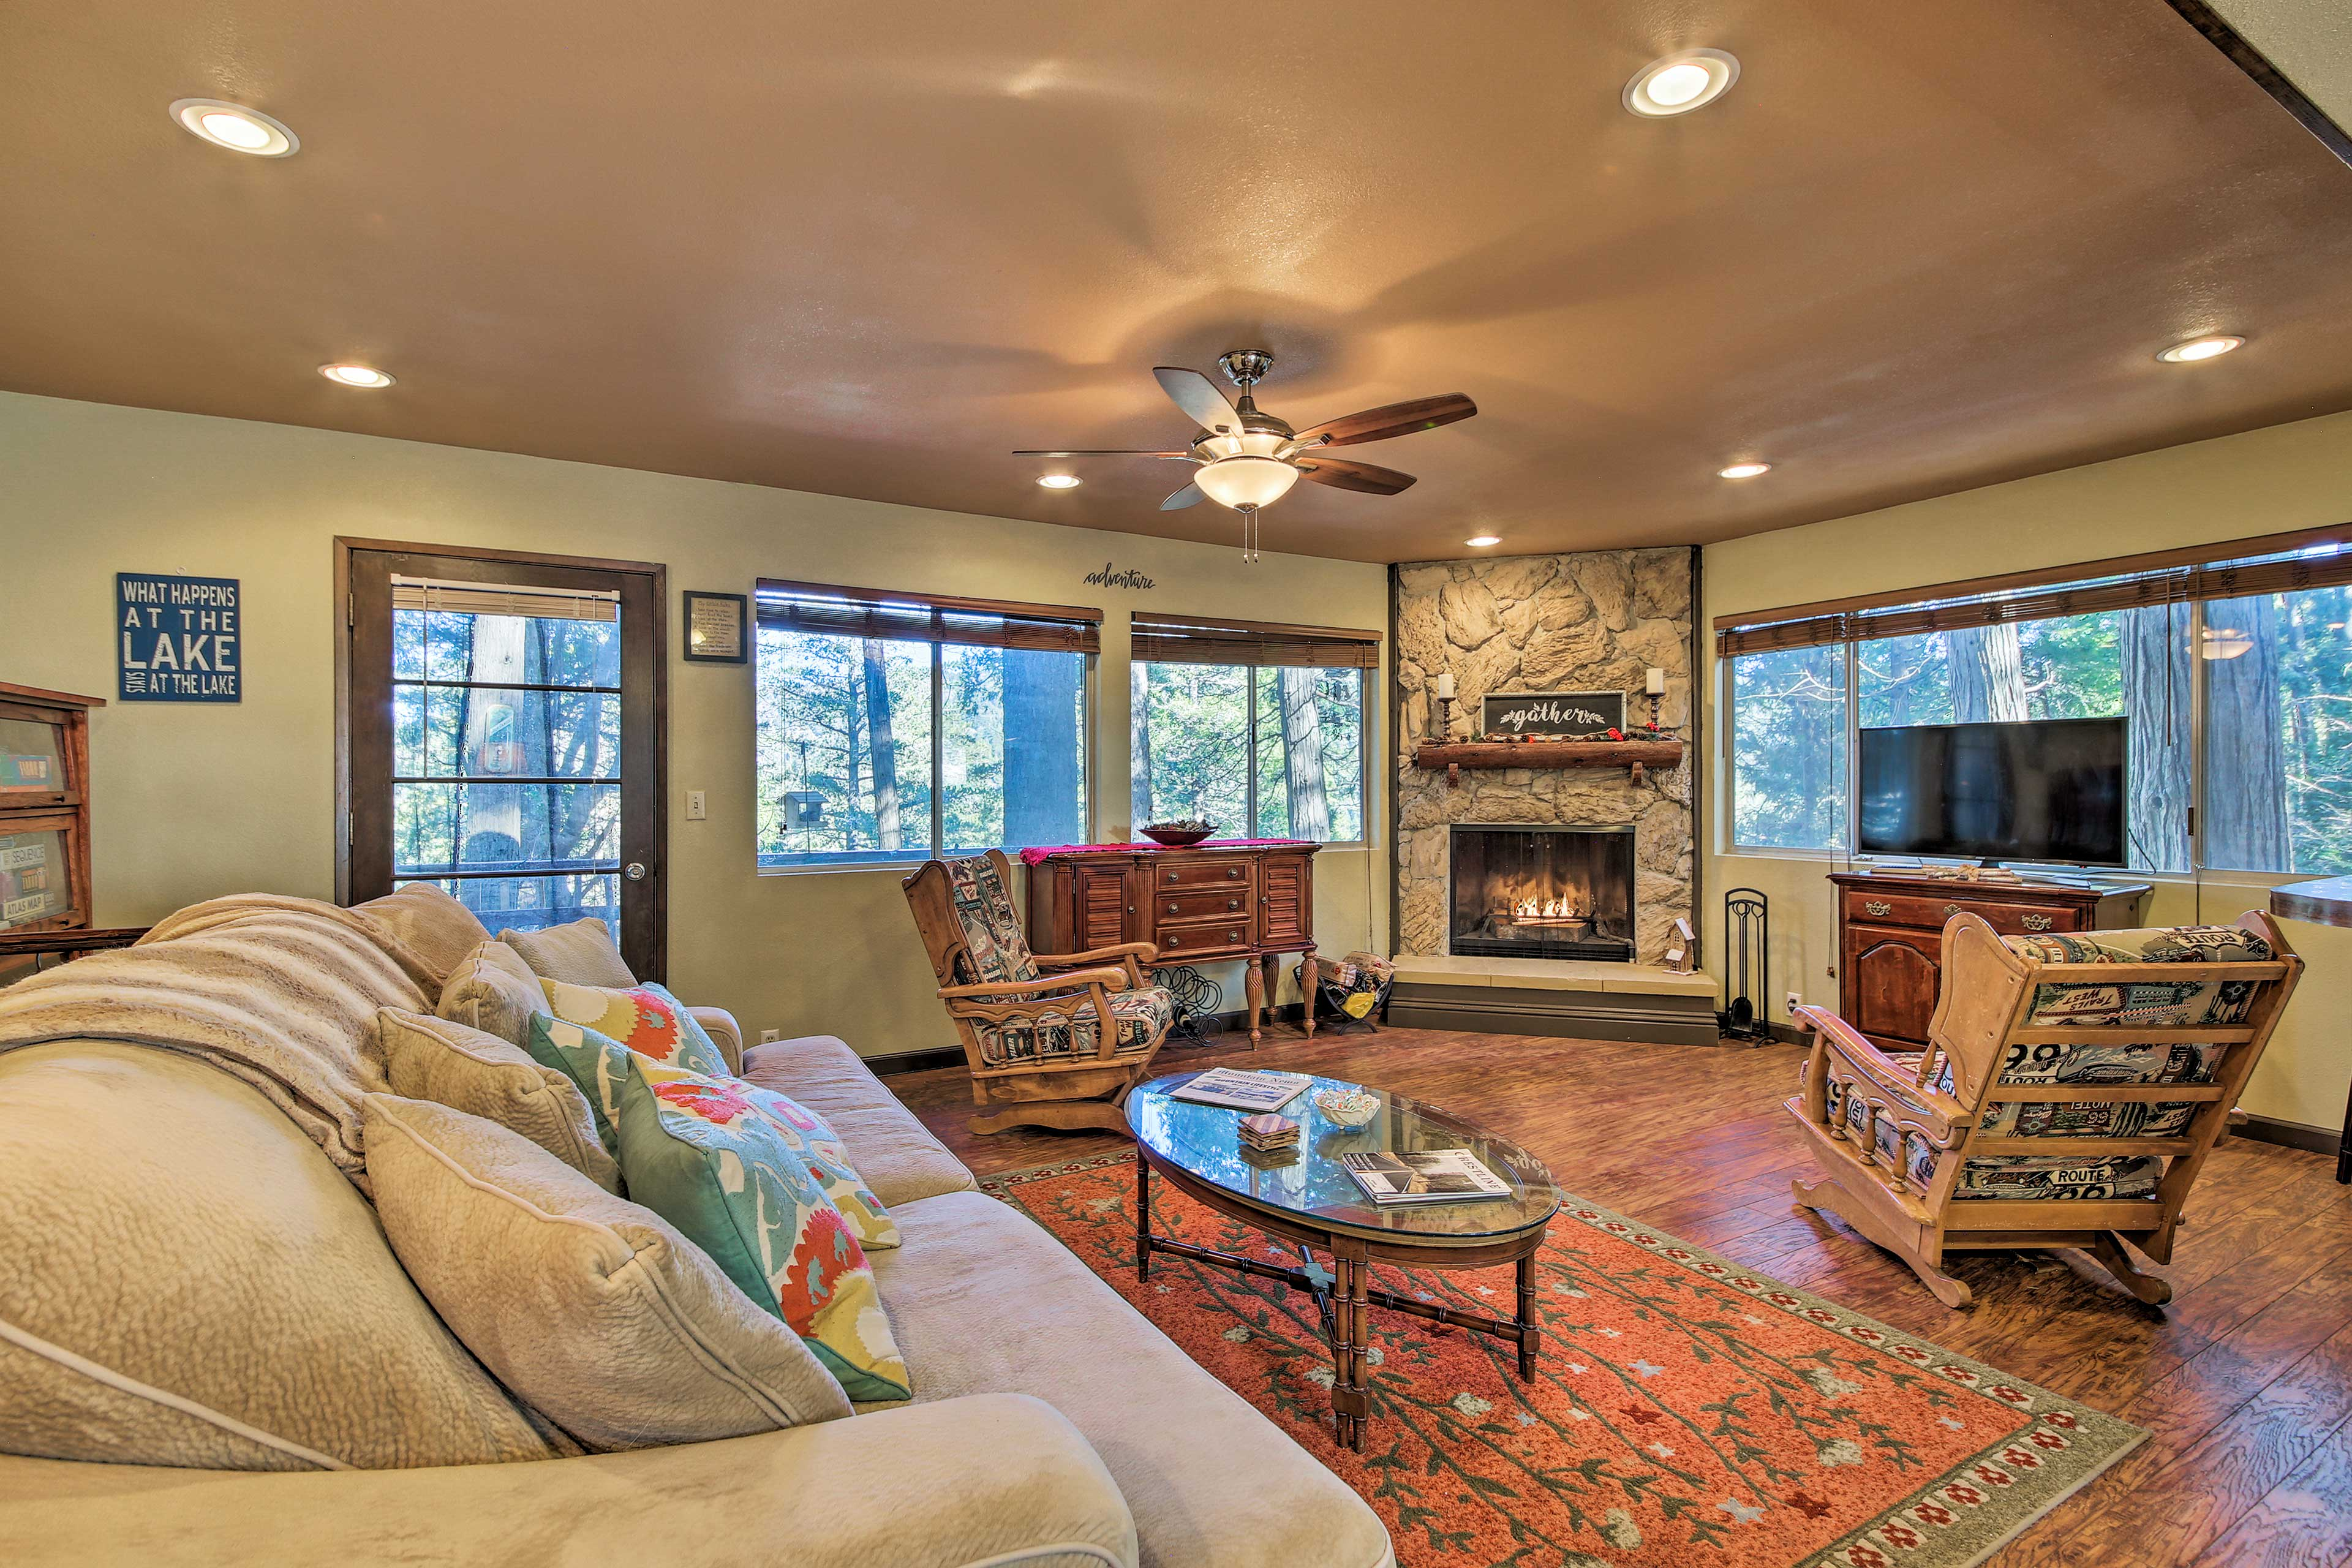 Retreat to the beautiful Crestline area at this rustic vacation rental home!